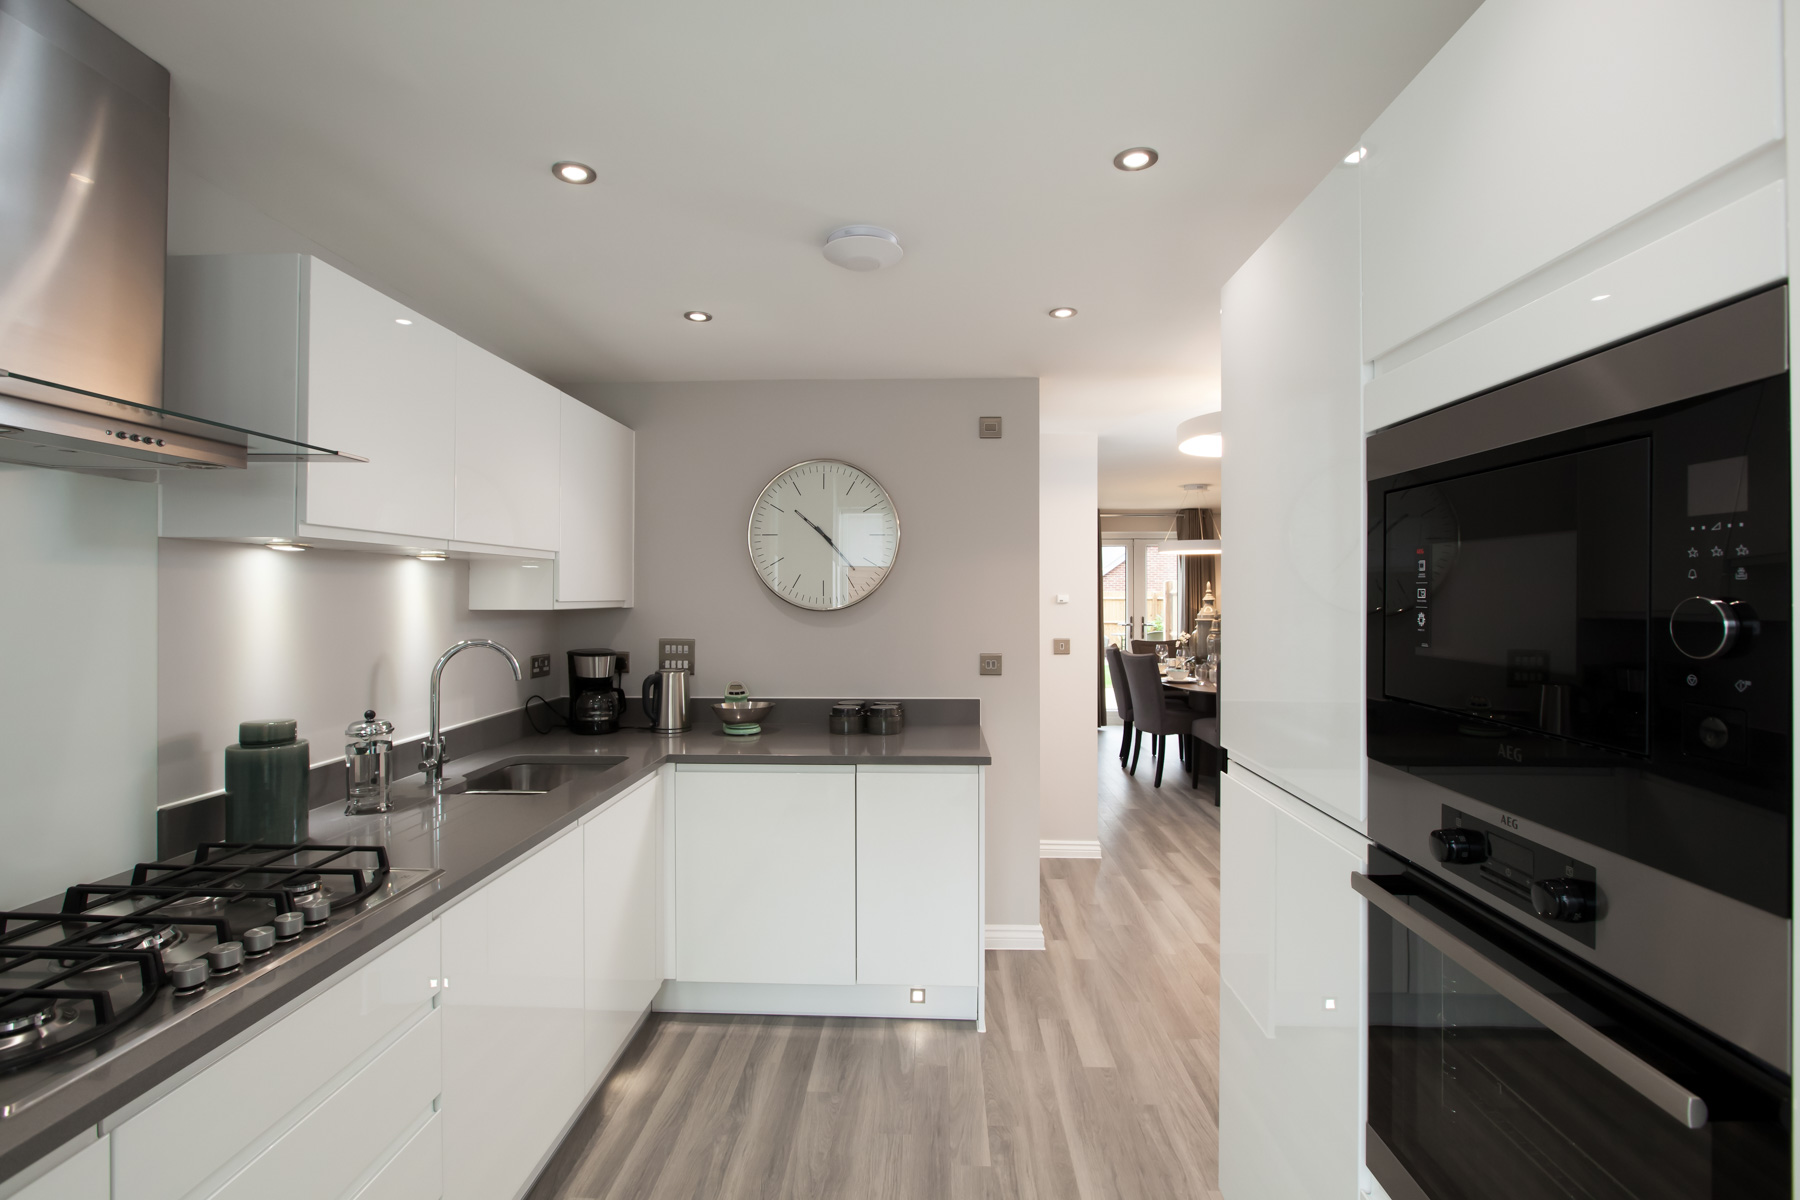 TW Exeter - Sherford - The Danbury example kitchen